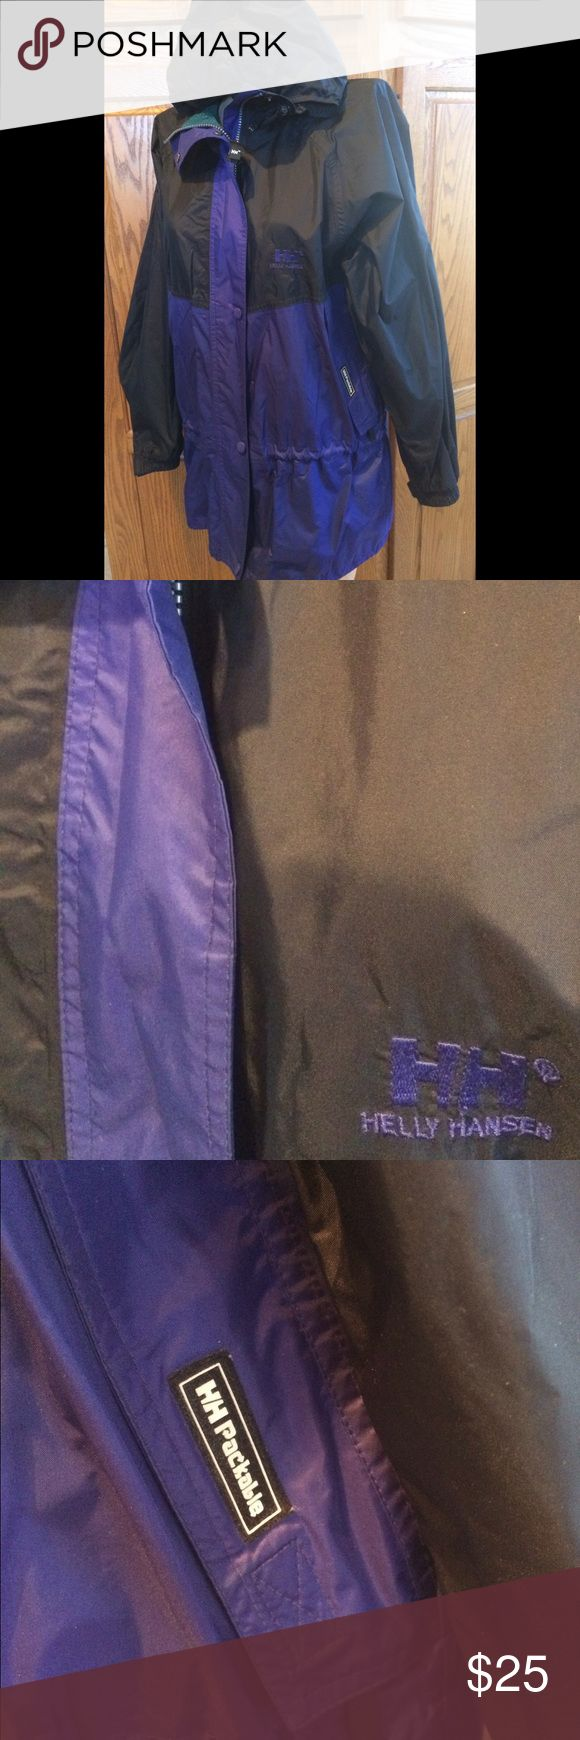 Helly Hansen Packable jacket men small Great condition without flaws, hardly worn. Helly Hansen Jackets & Coats